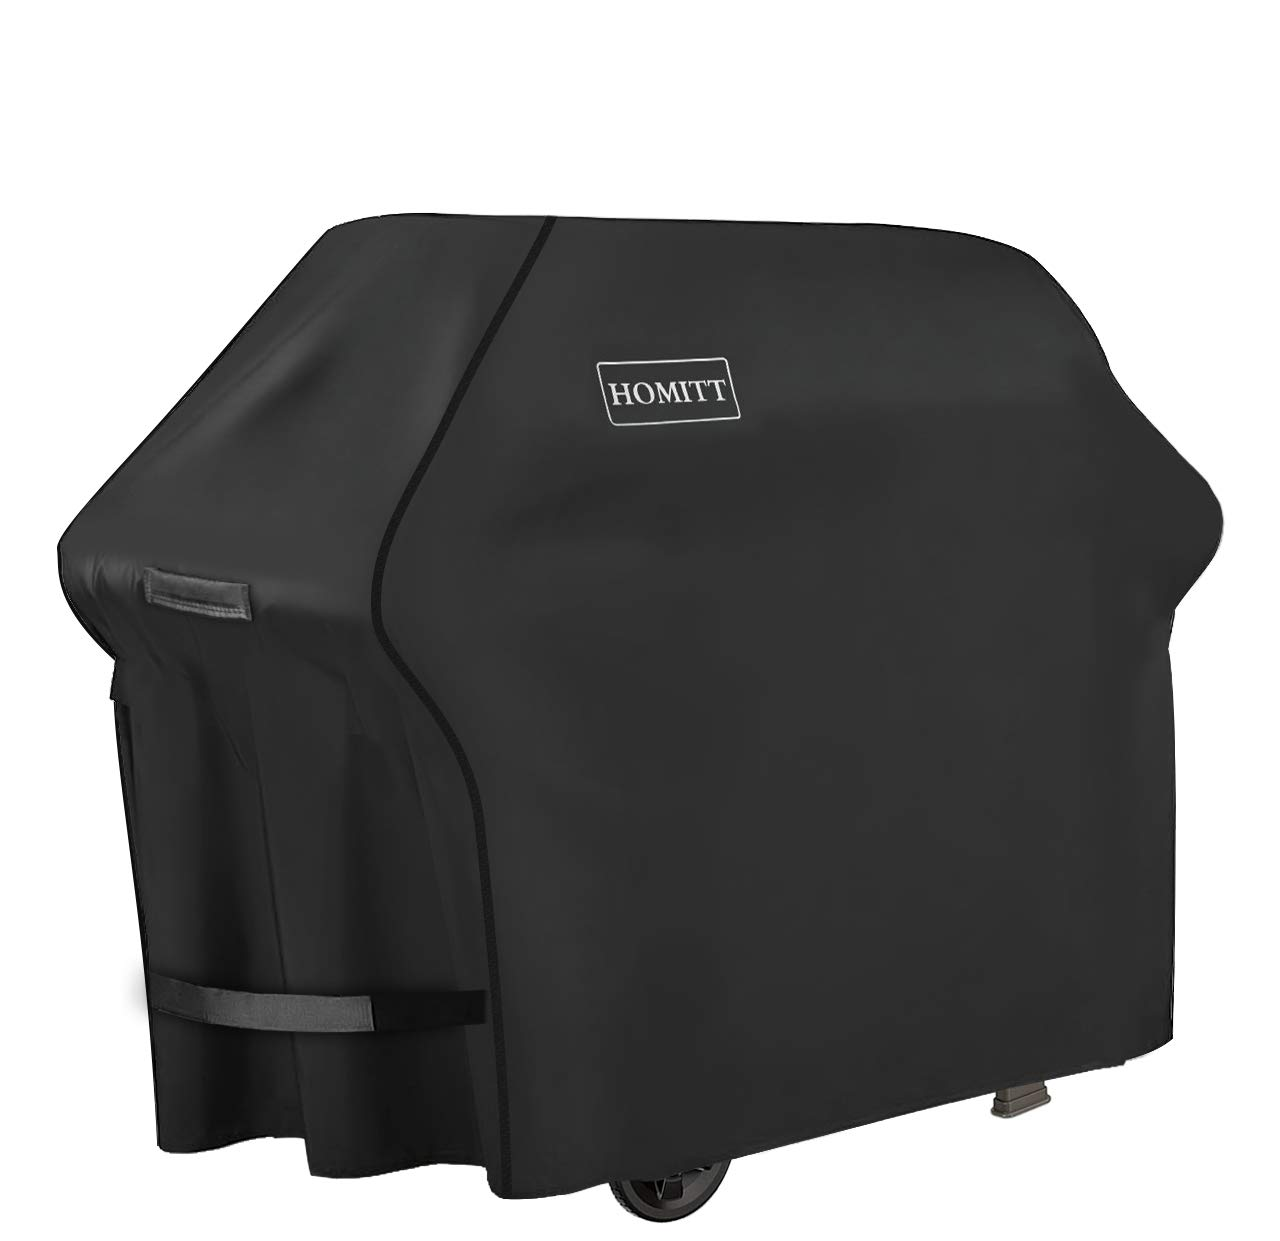 Homitt Gas Grill Cover, 58-inch 3-4 Burner 600D Heavy Duty Waterproof BBQ Cover with Handles and Straps for Most Brands of Grill -Black by Homitt